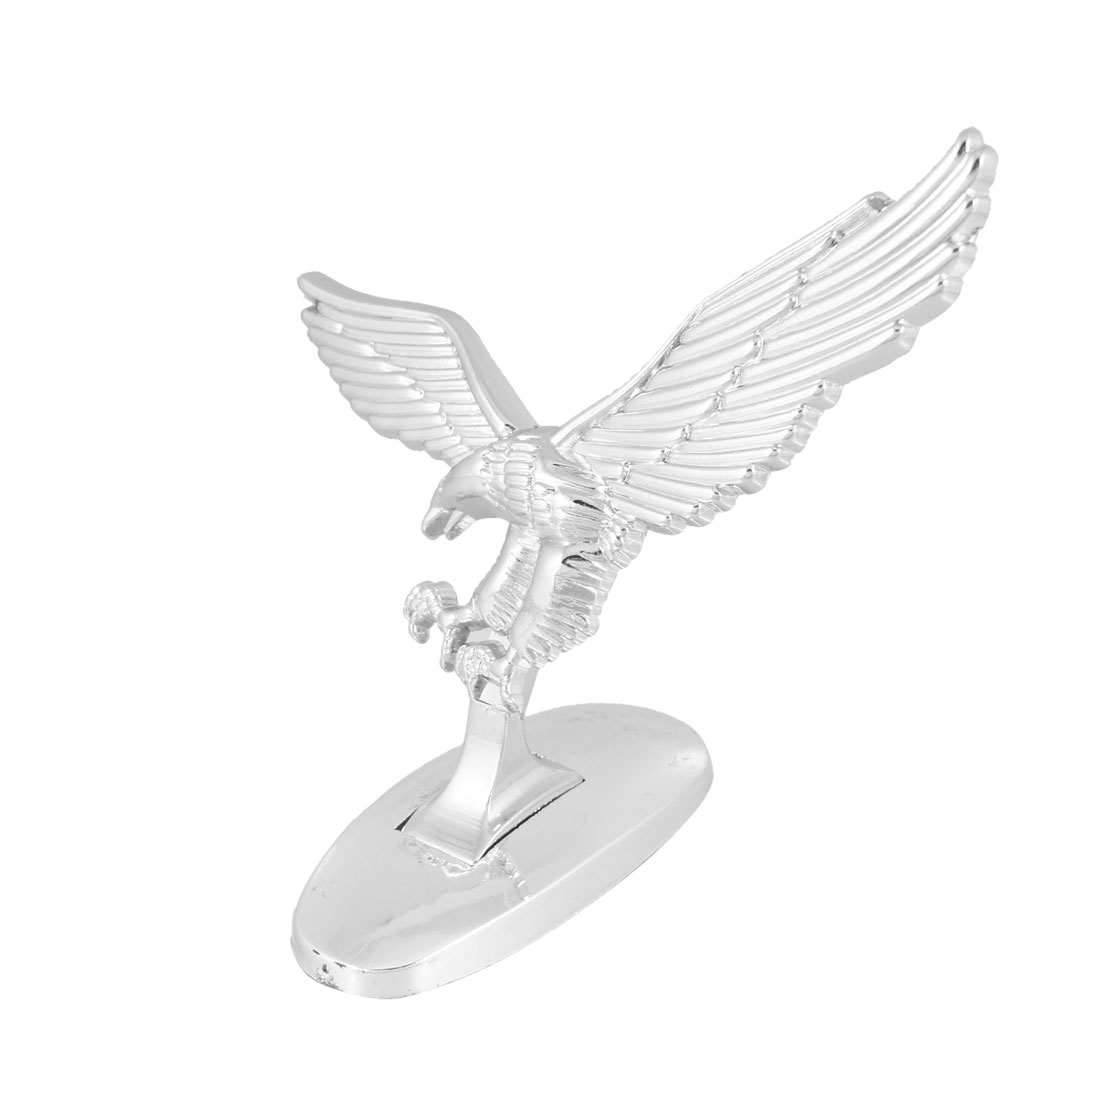 Silver Tone 3D Flying Eagle Self Adhesive Sticker Decal for Auto Car